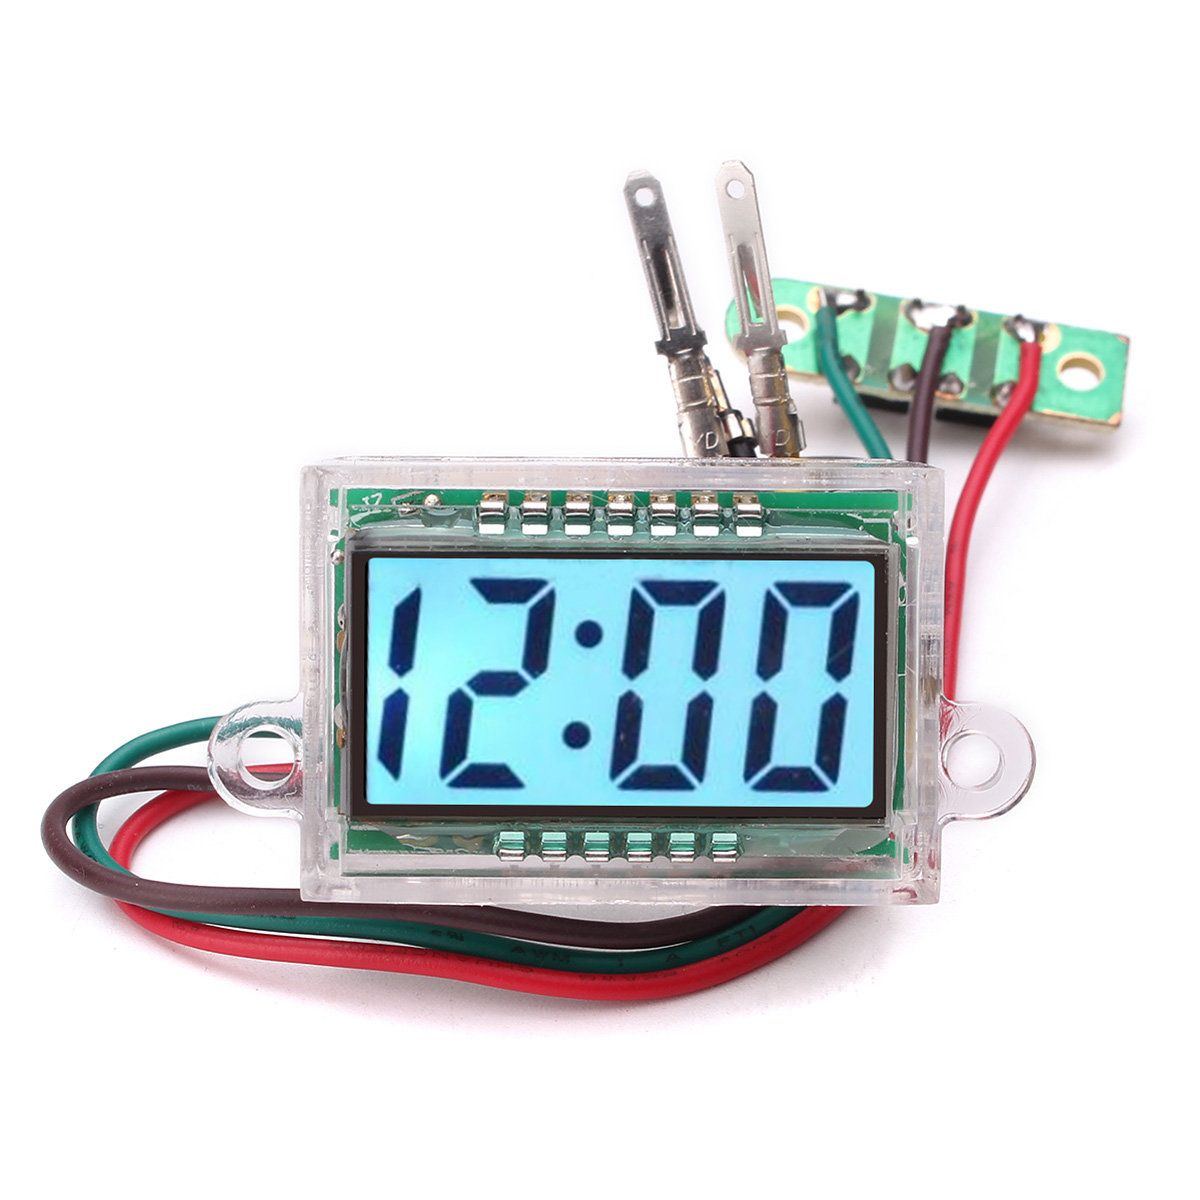 Us 7 97 38x26x17mm Dc 12v Waterproof Digital Lcd Dashboard Automatic Clock For Diy 38x26x17mm Waterproof Digital Dashboard Automatic Giftme Clock